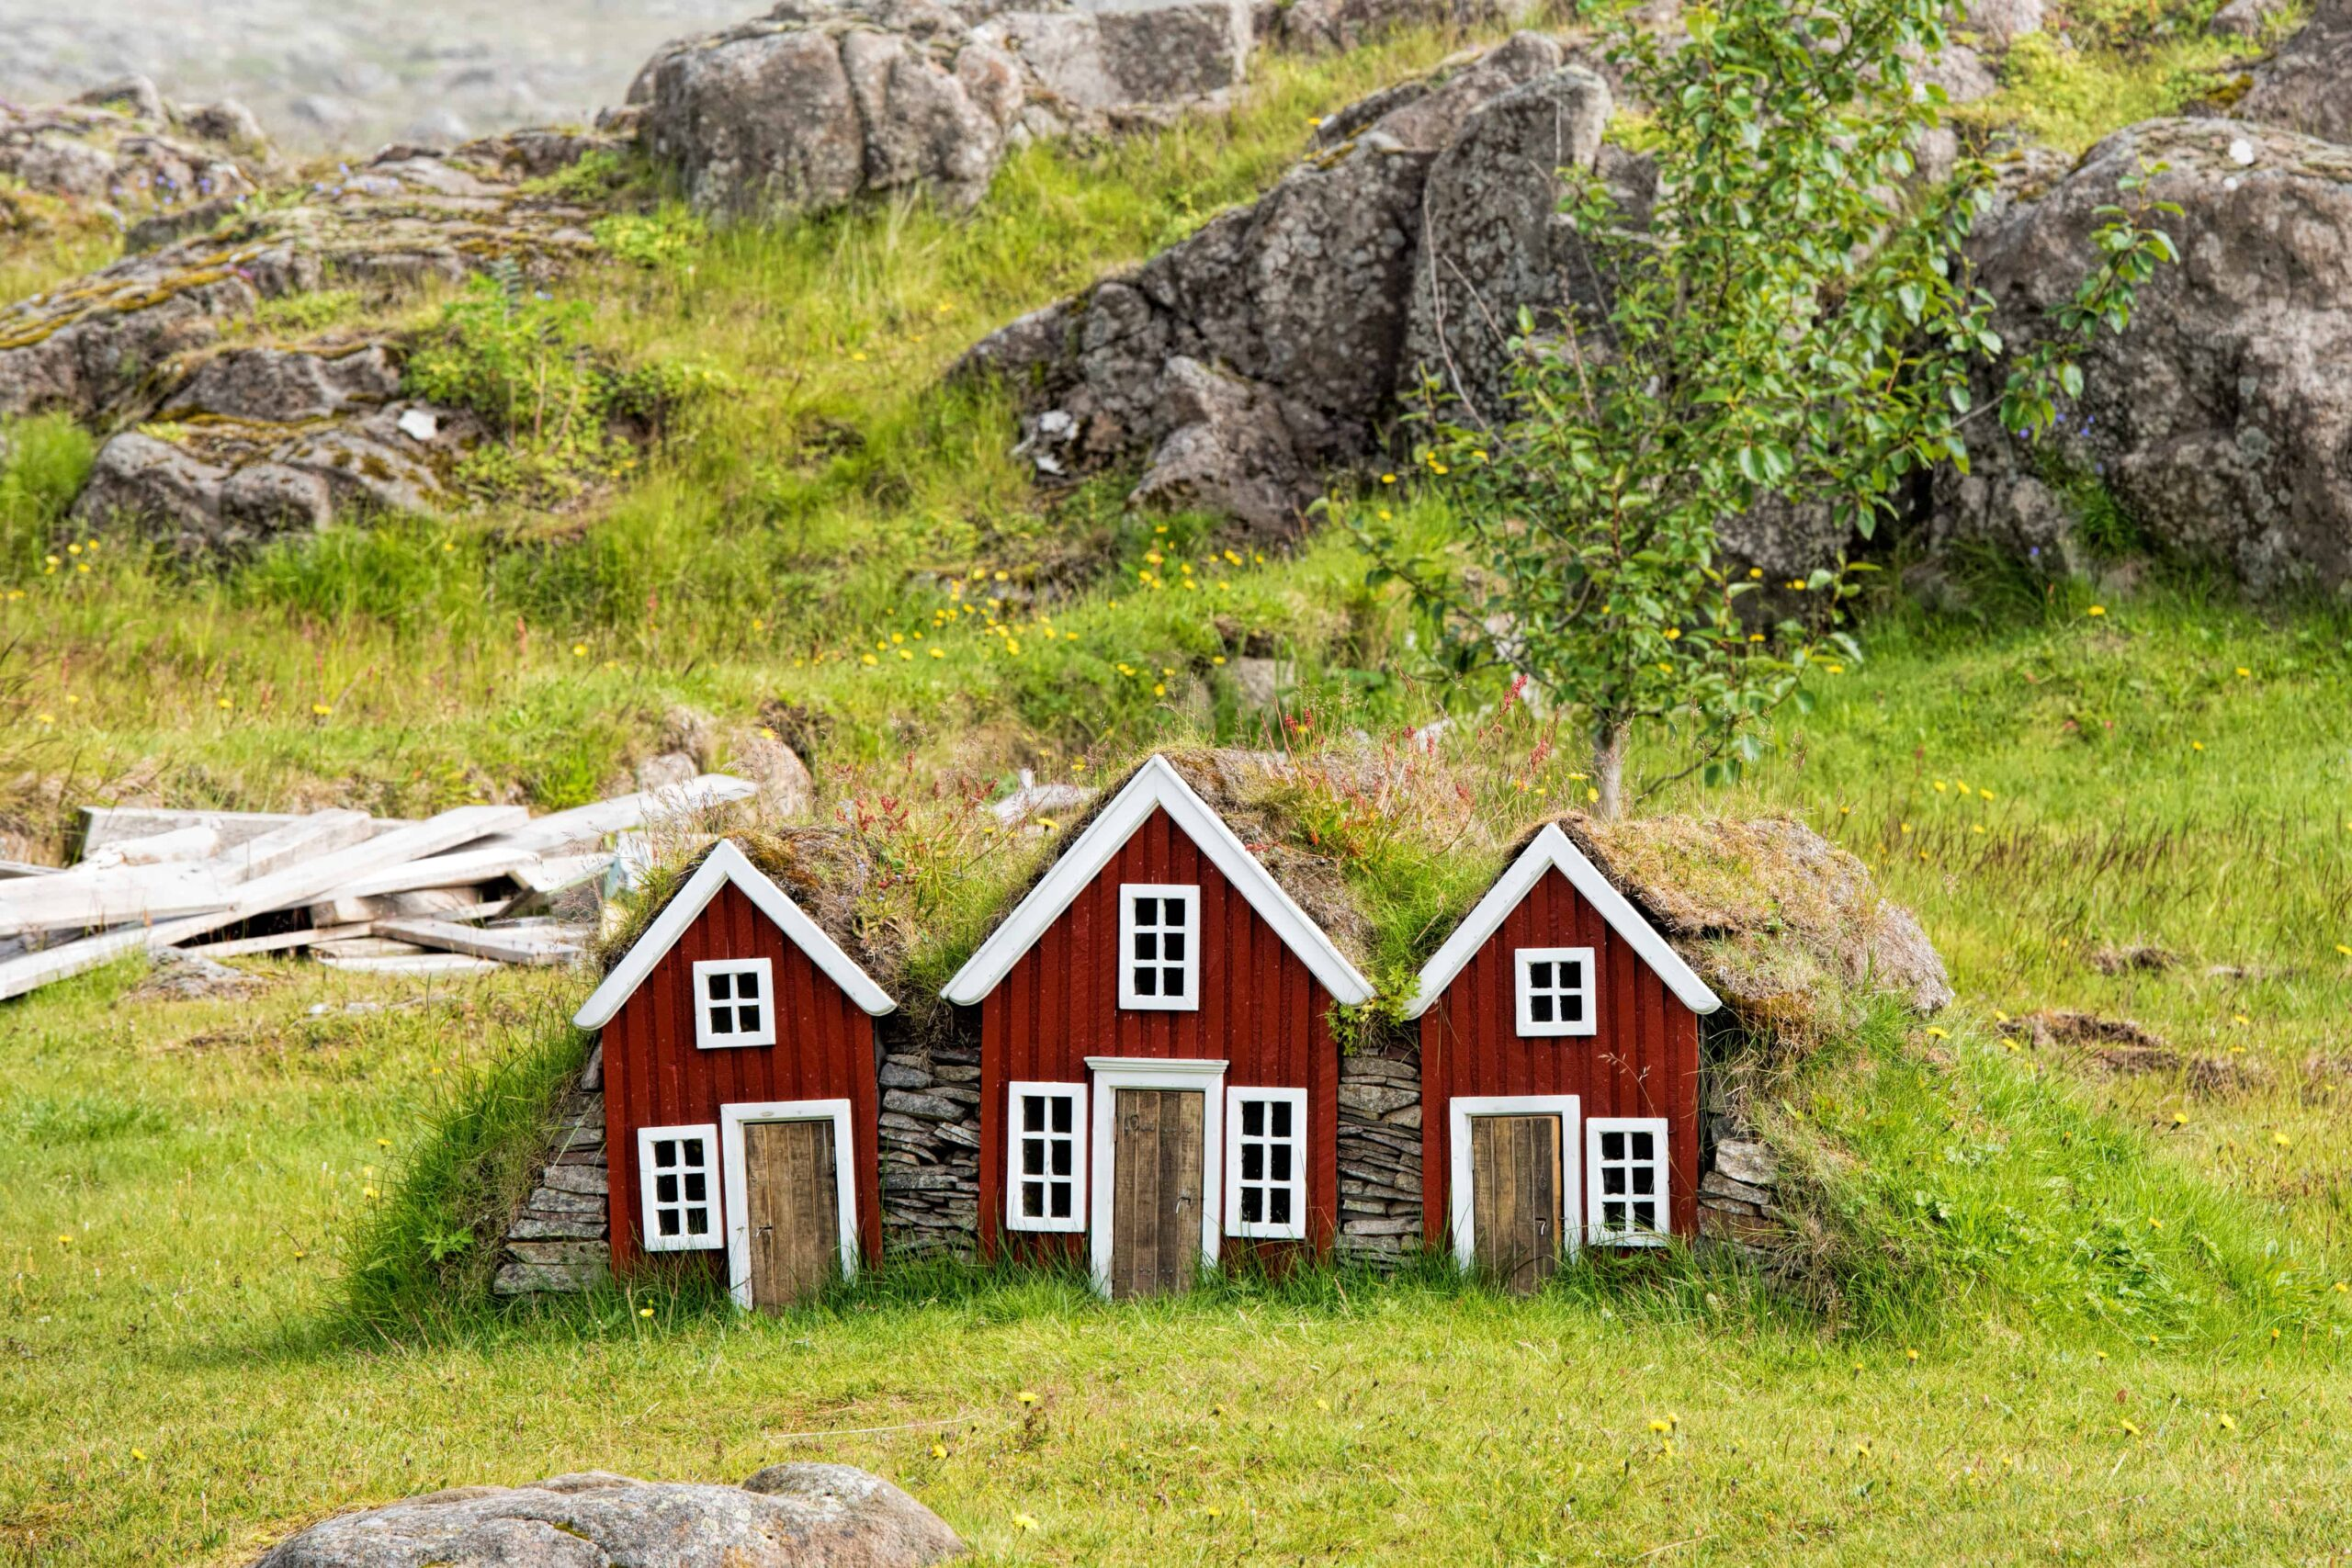 Elf house in Iceland